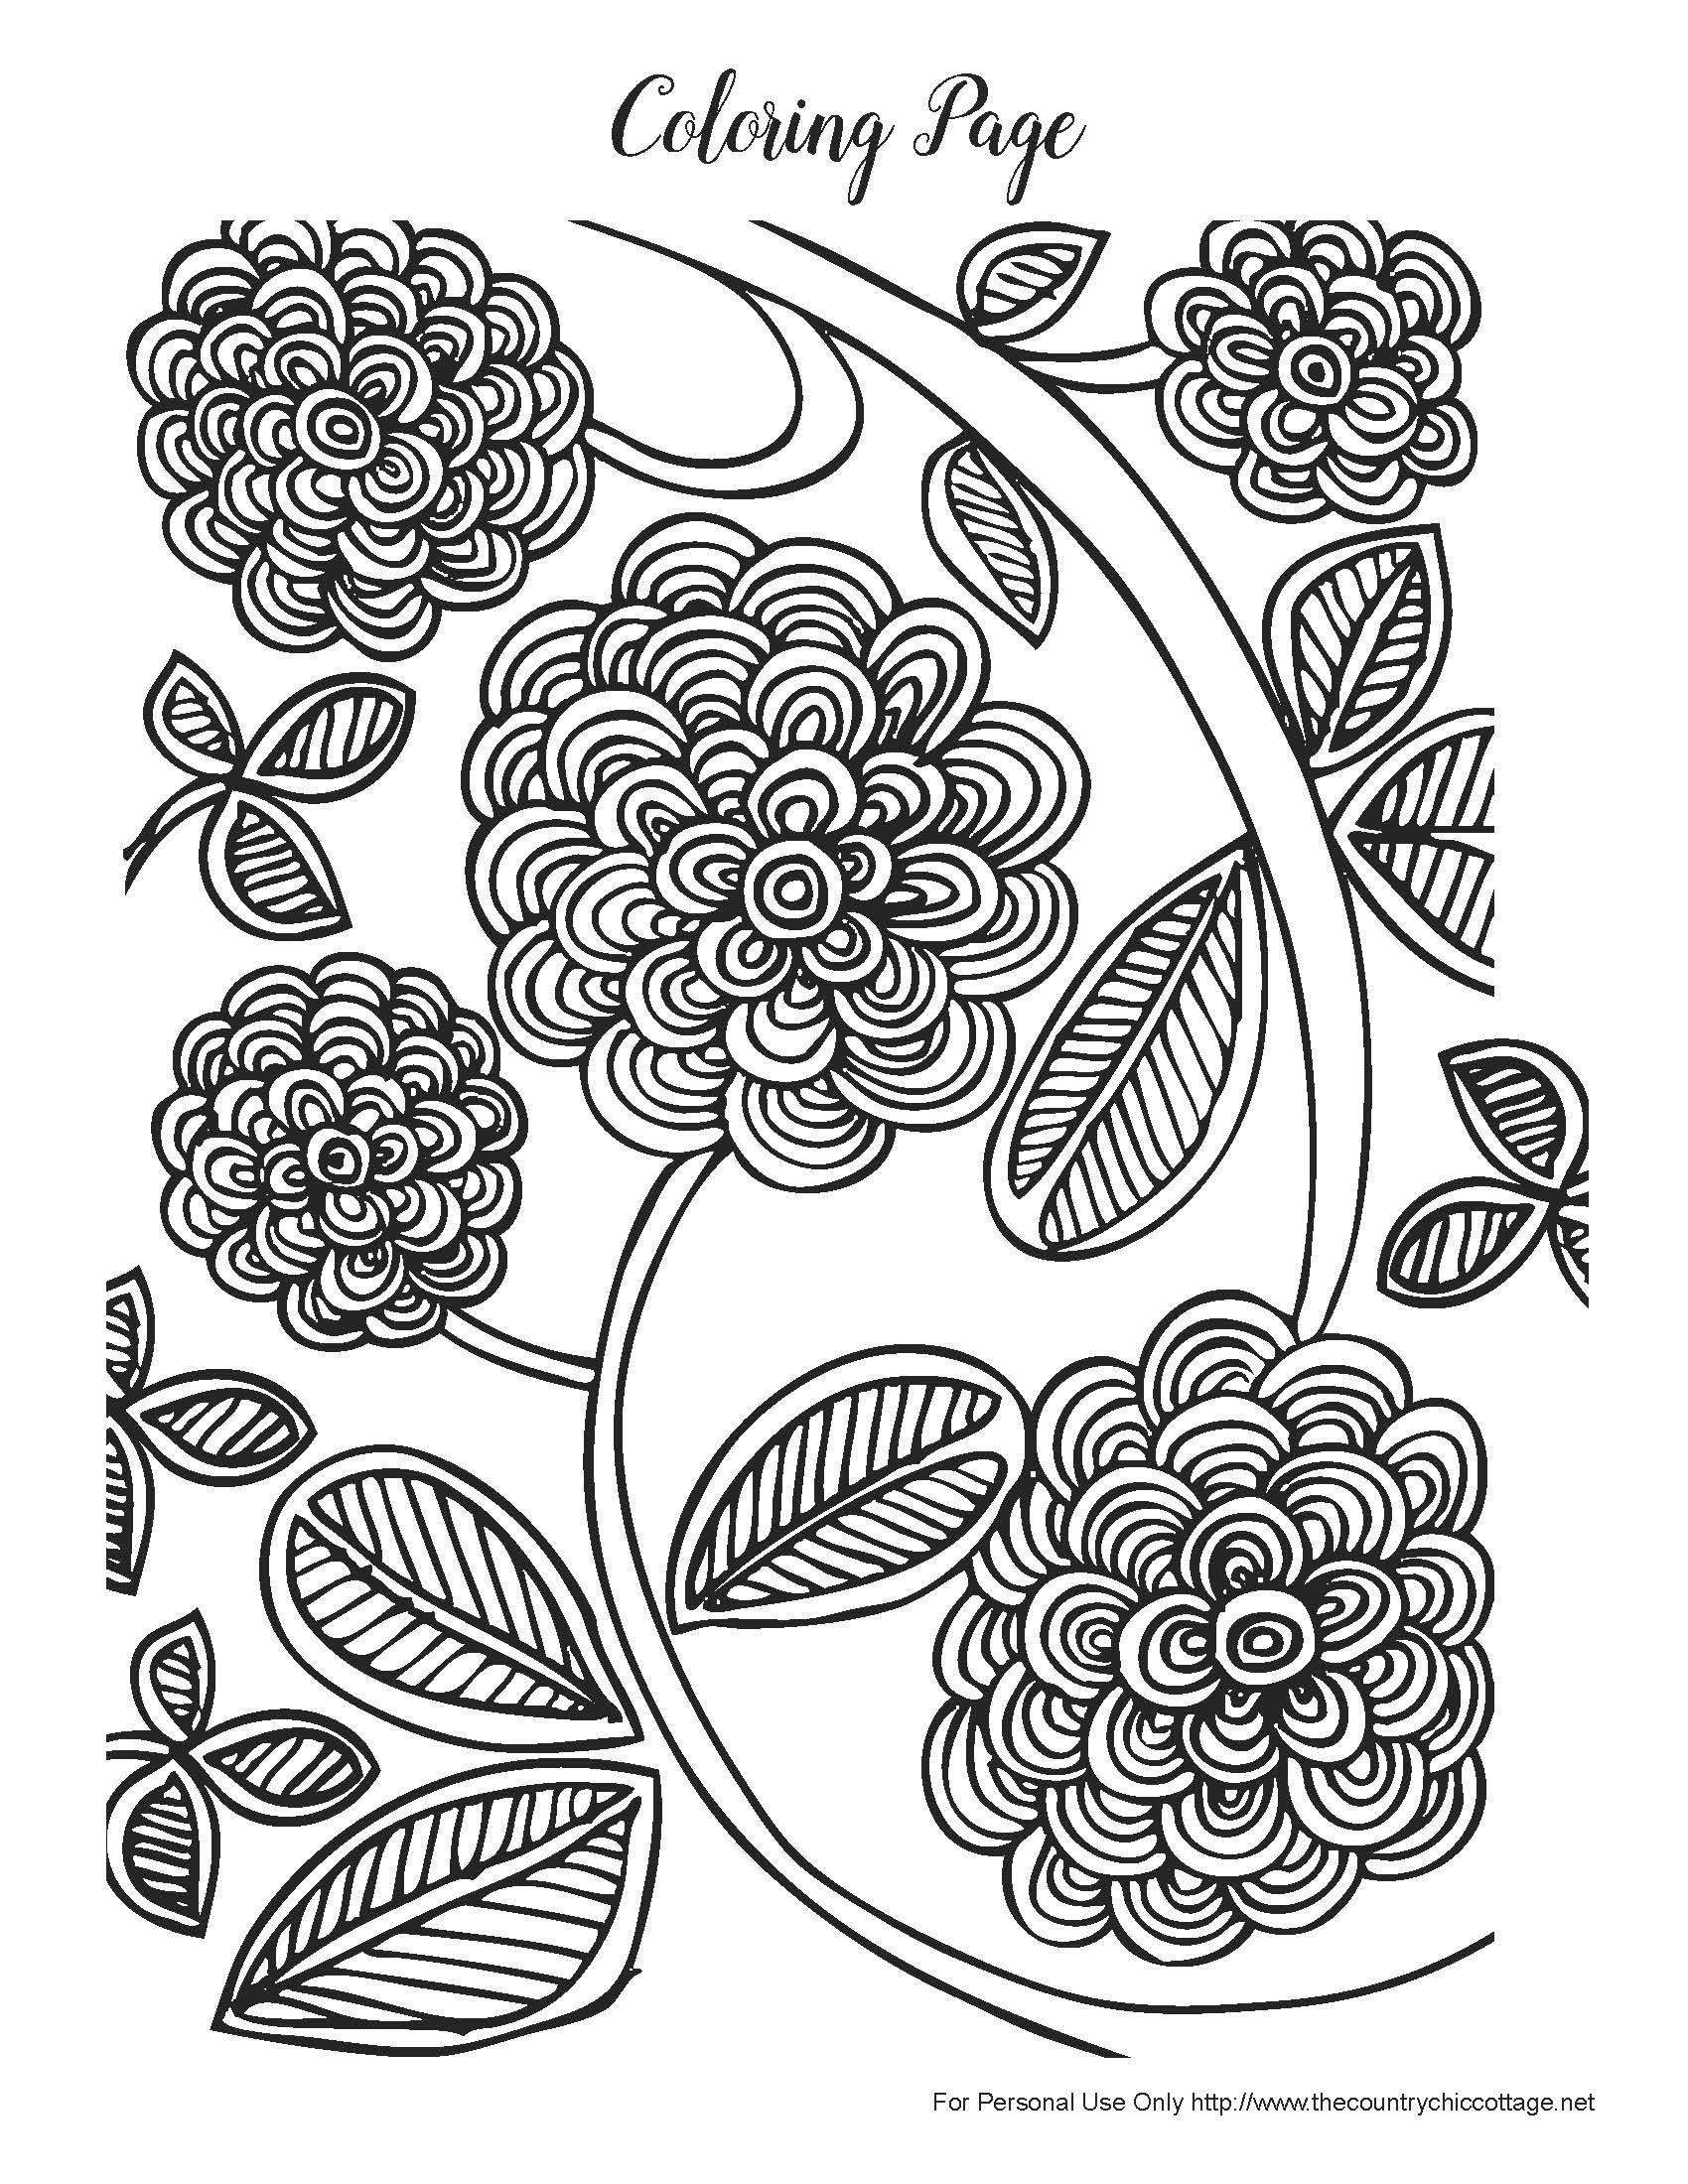 Free Spring Coloring Pages For Adults Spring Coloring Pages Free Coloring Pages Coloring Pages